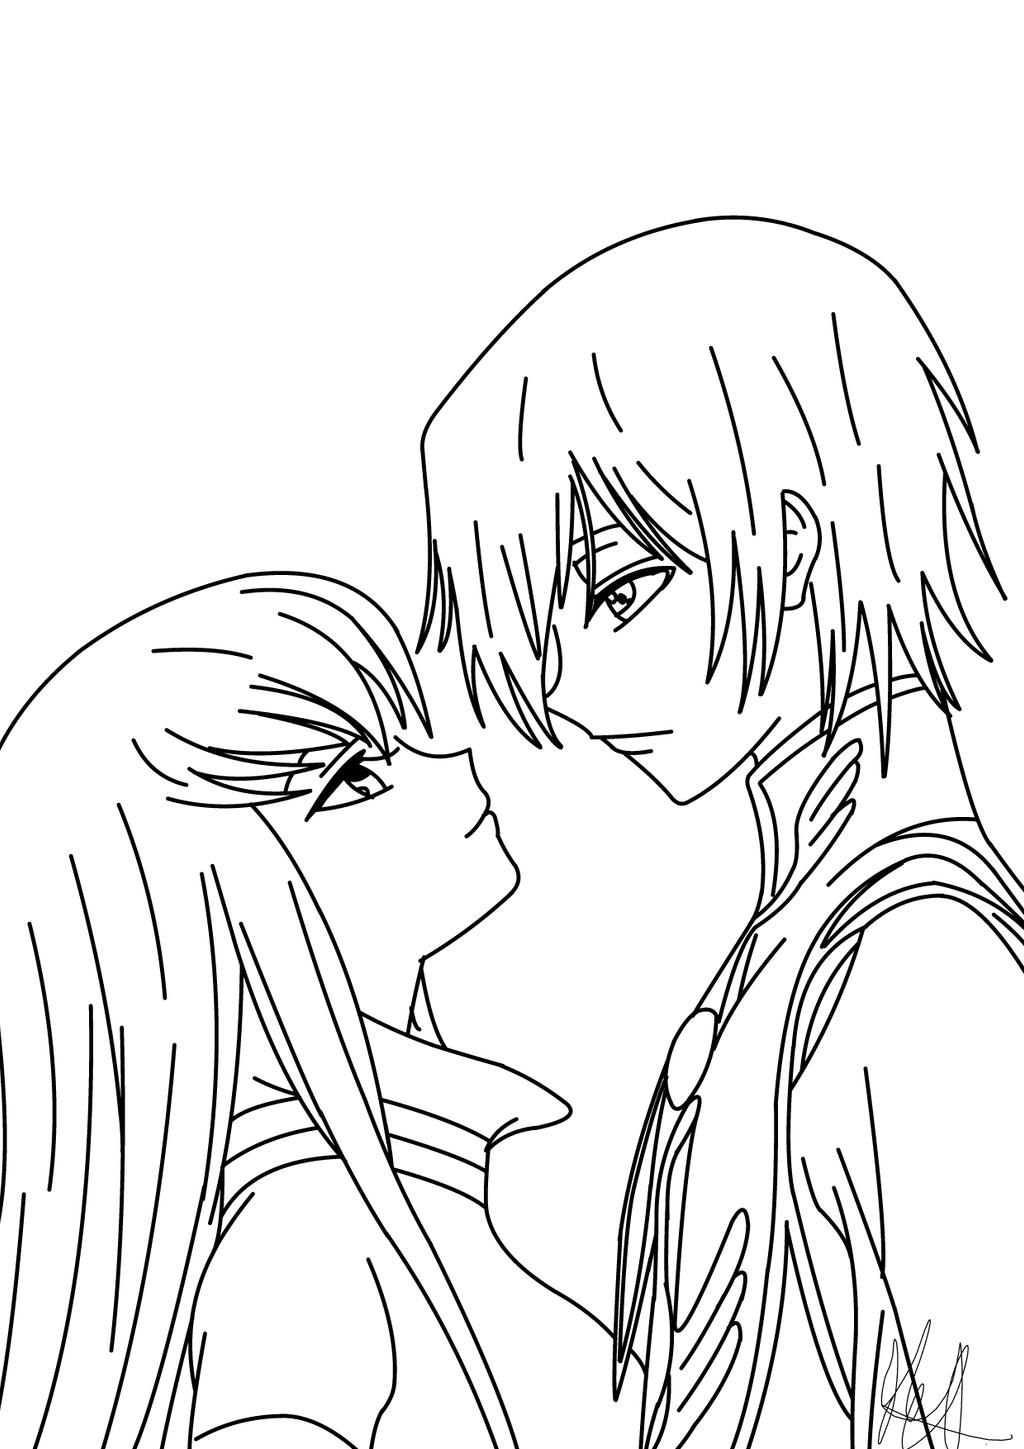 Drawing Lines With C : C lelouch quick line art drawing by farside on